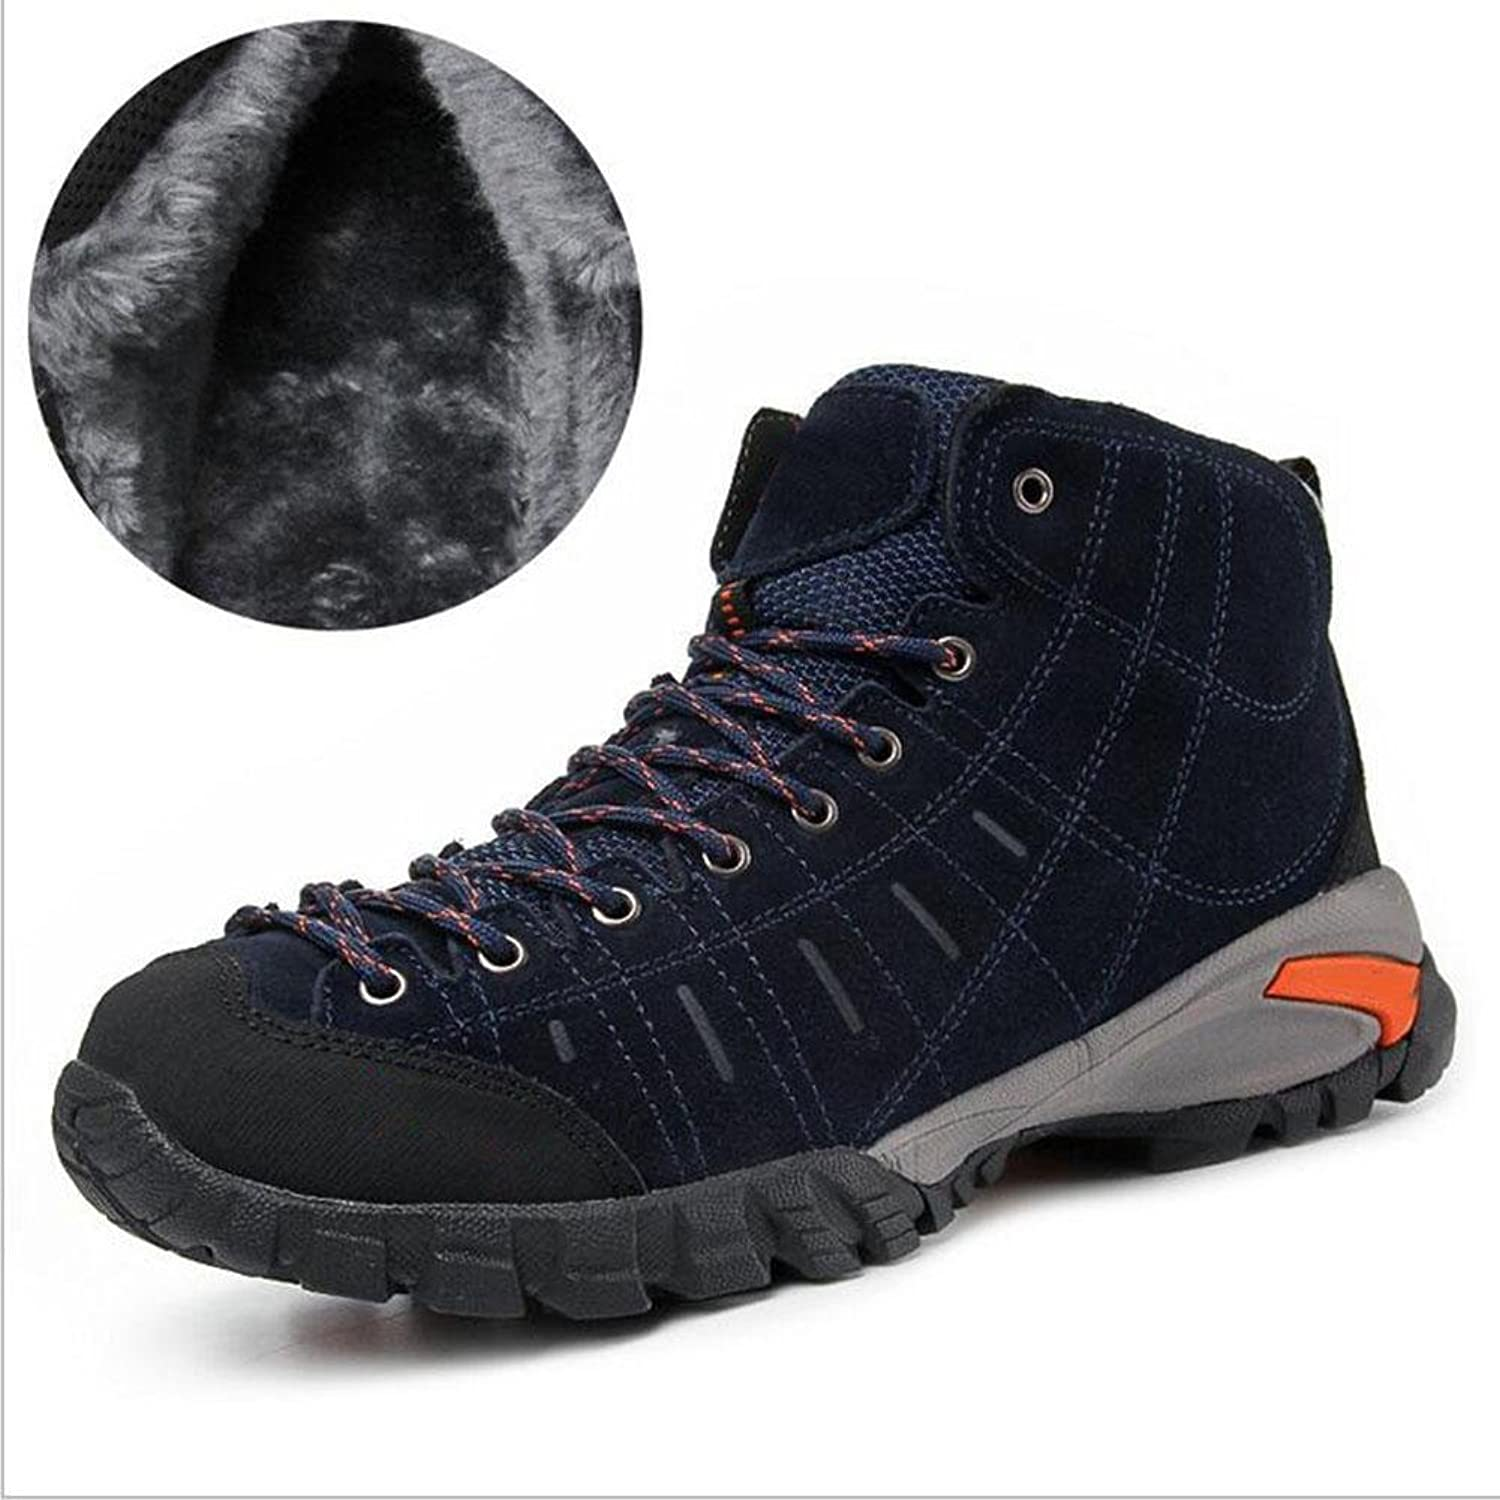 Z&HX sportsAutumn and winter plus cashmere warm high to help climbing shoes hiking shoes outdoor cotton shoes